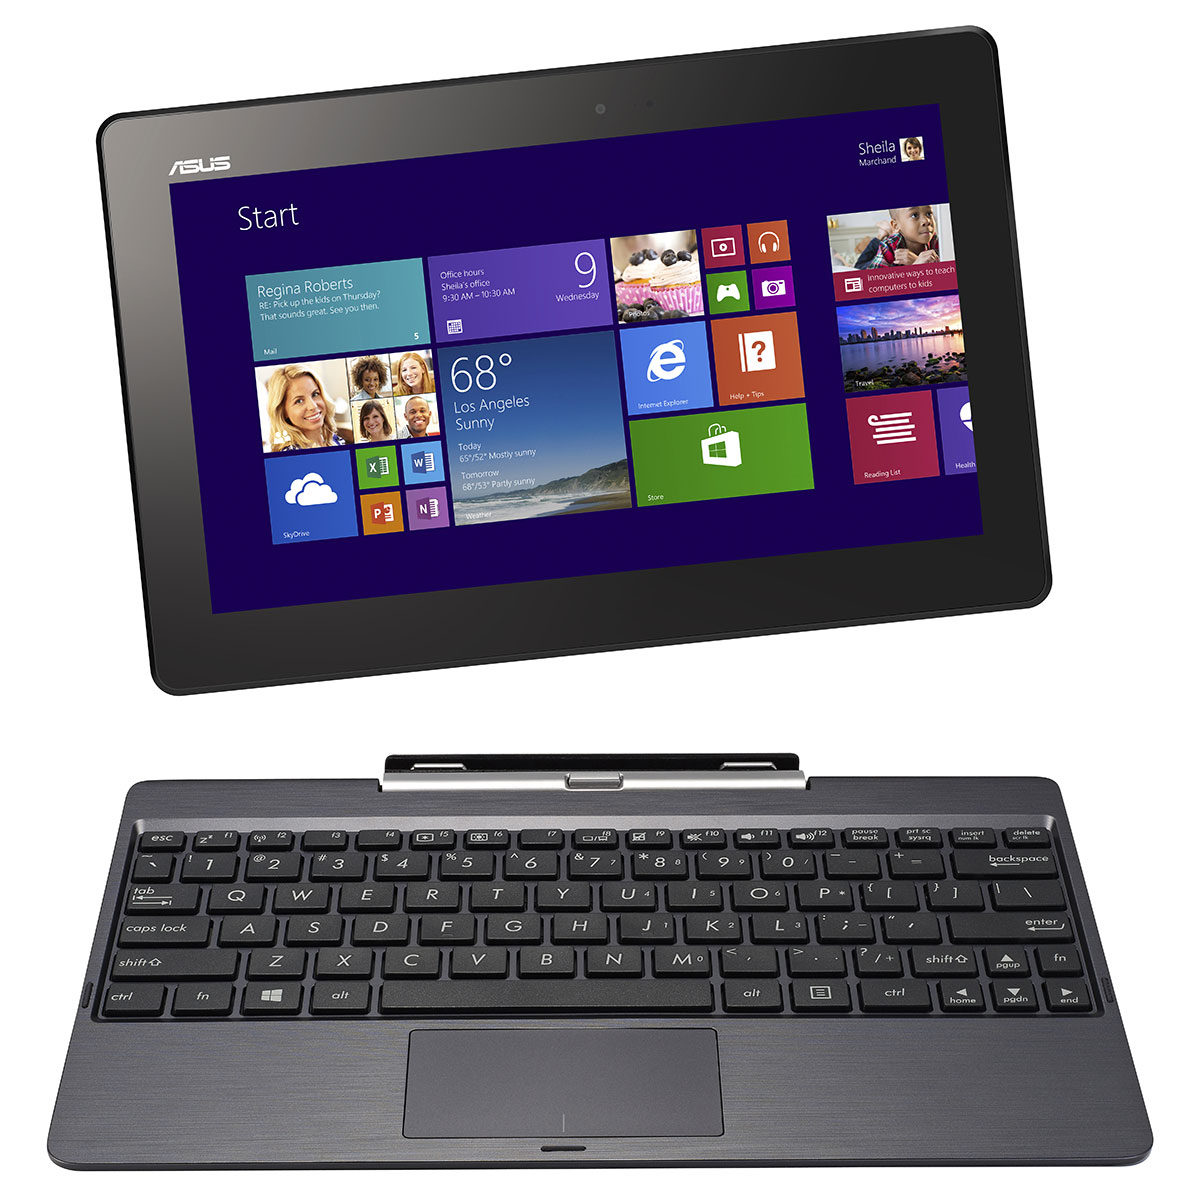 Asus transformer book t100ta dk002h avec clavier - Tablette tactile avec port usb ...